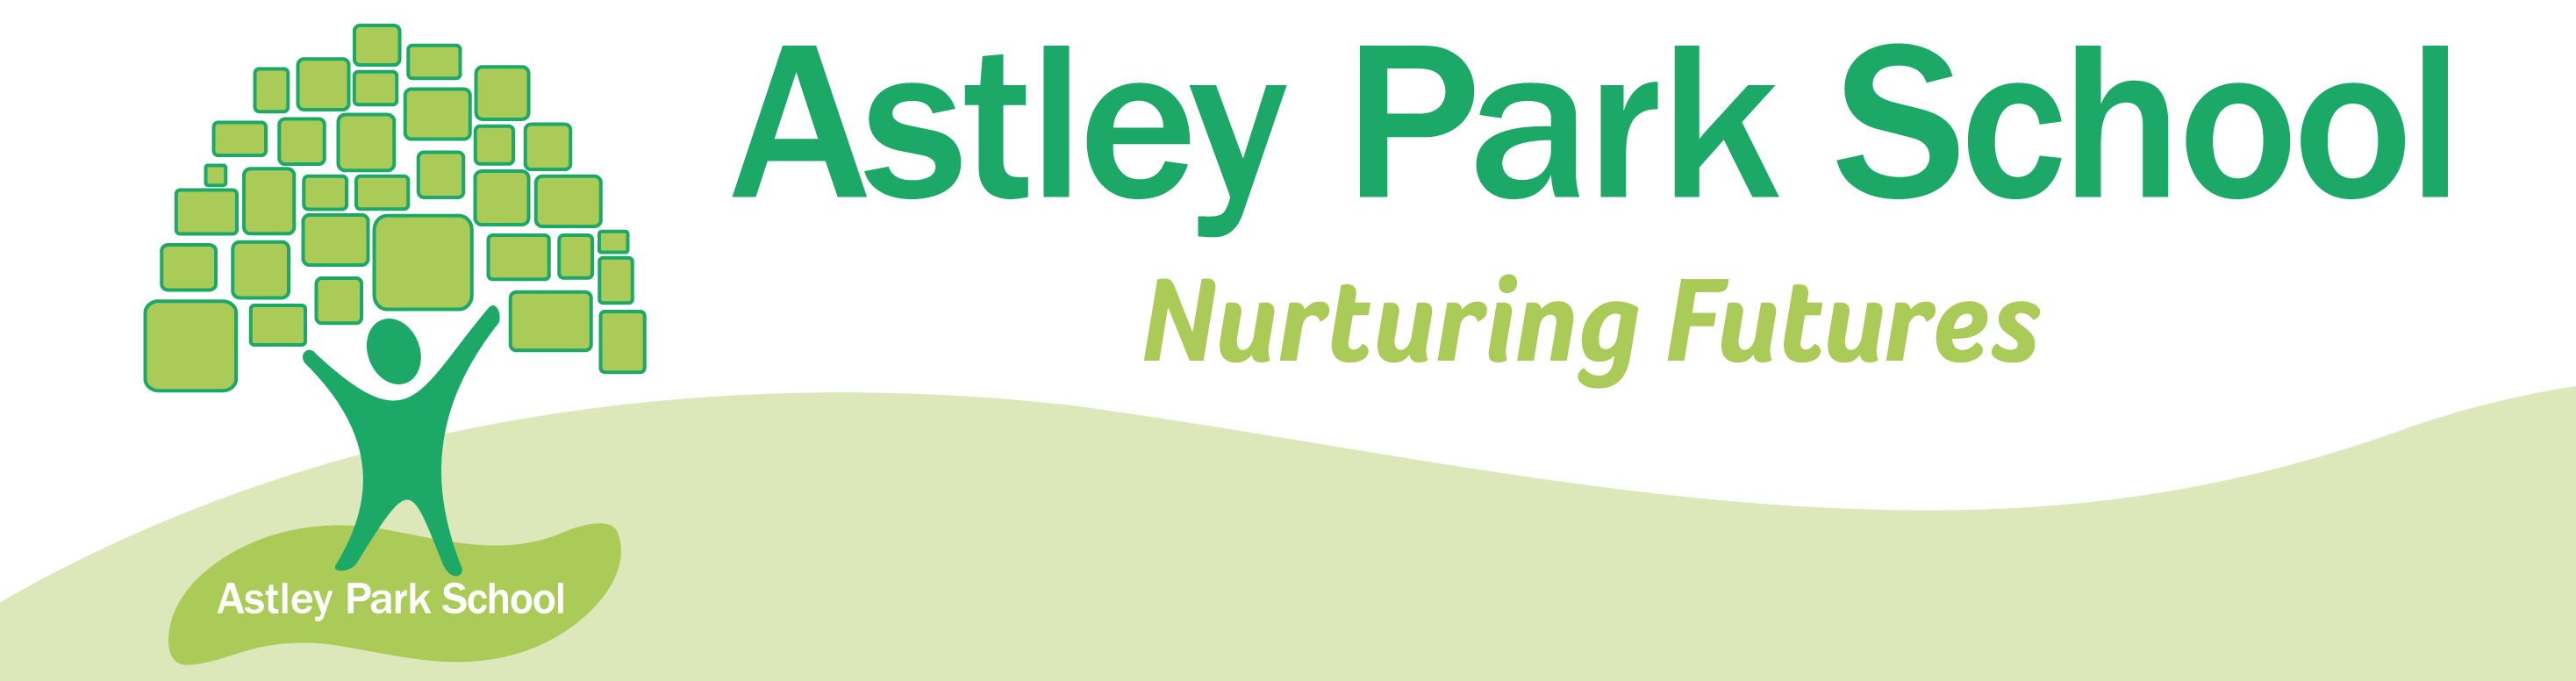 My Communication  | Astley Park School